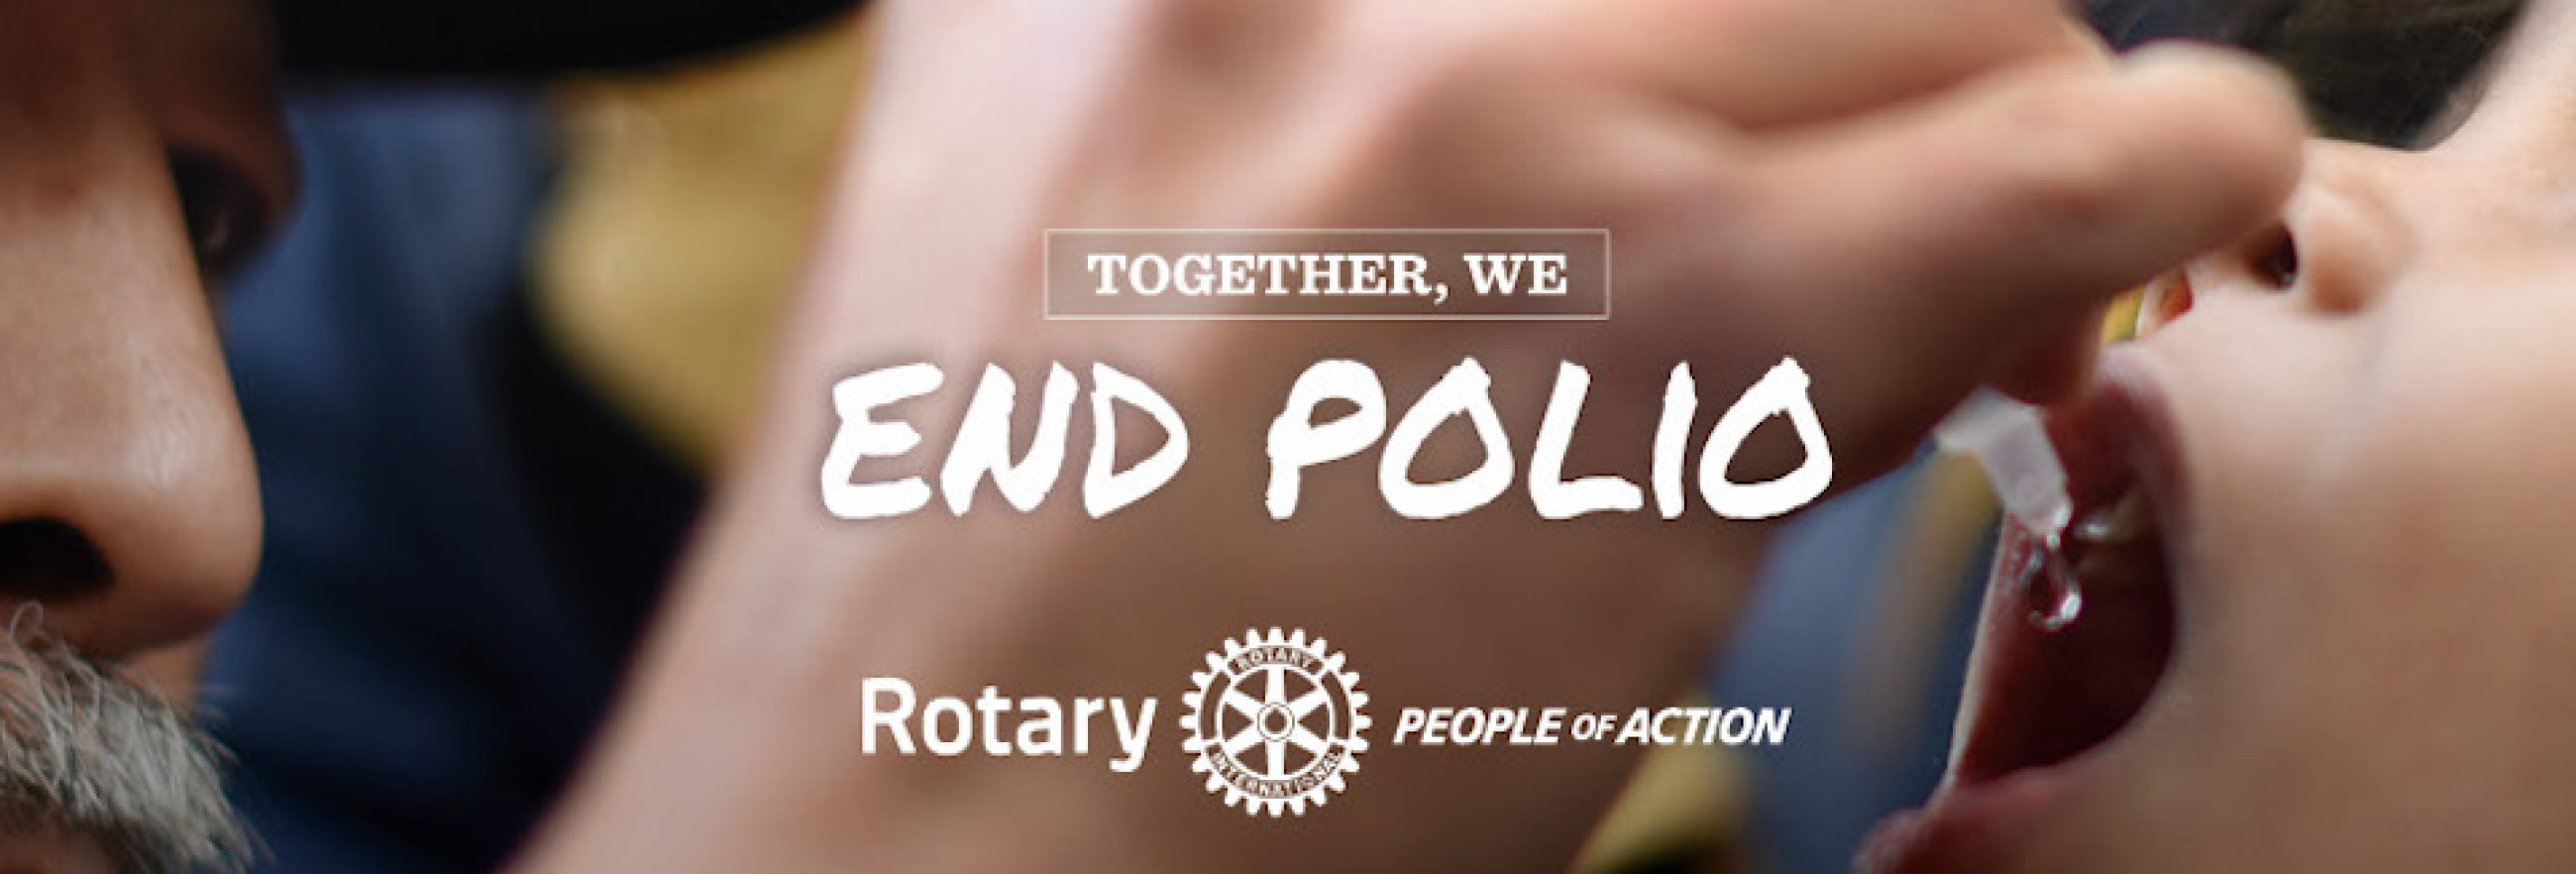 14622_Together_We_End_Polio_Digital_horizontal_banner_2